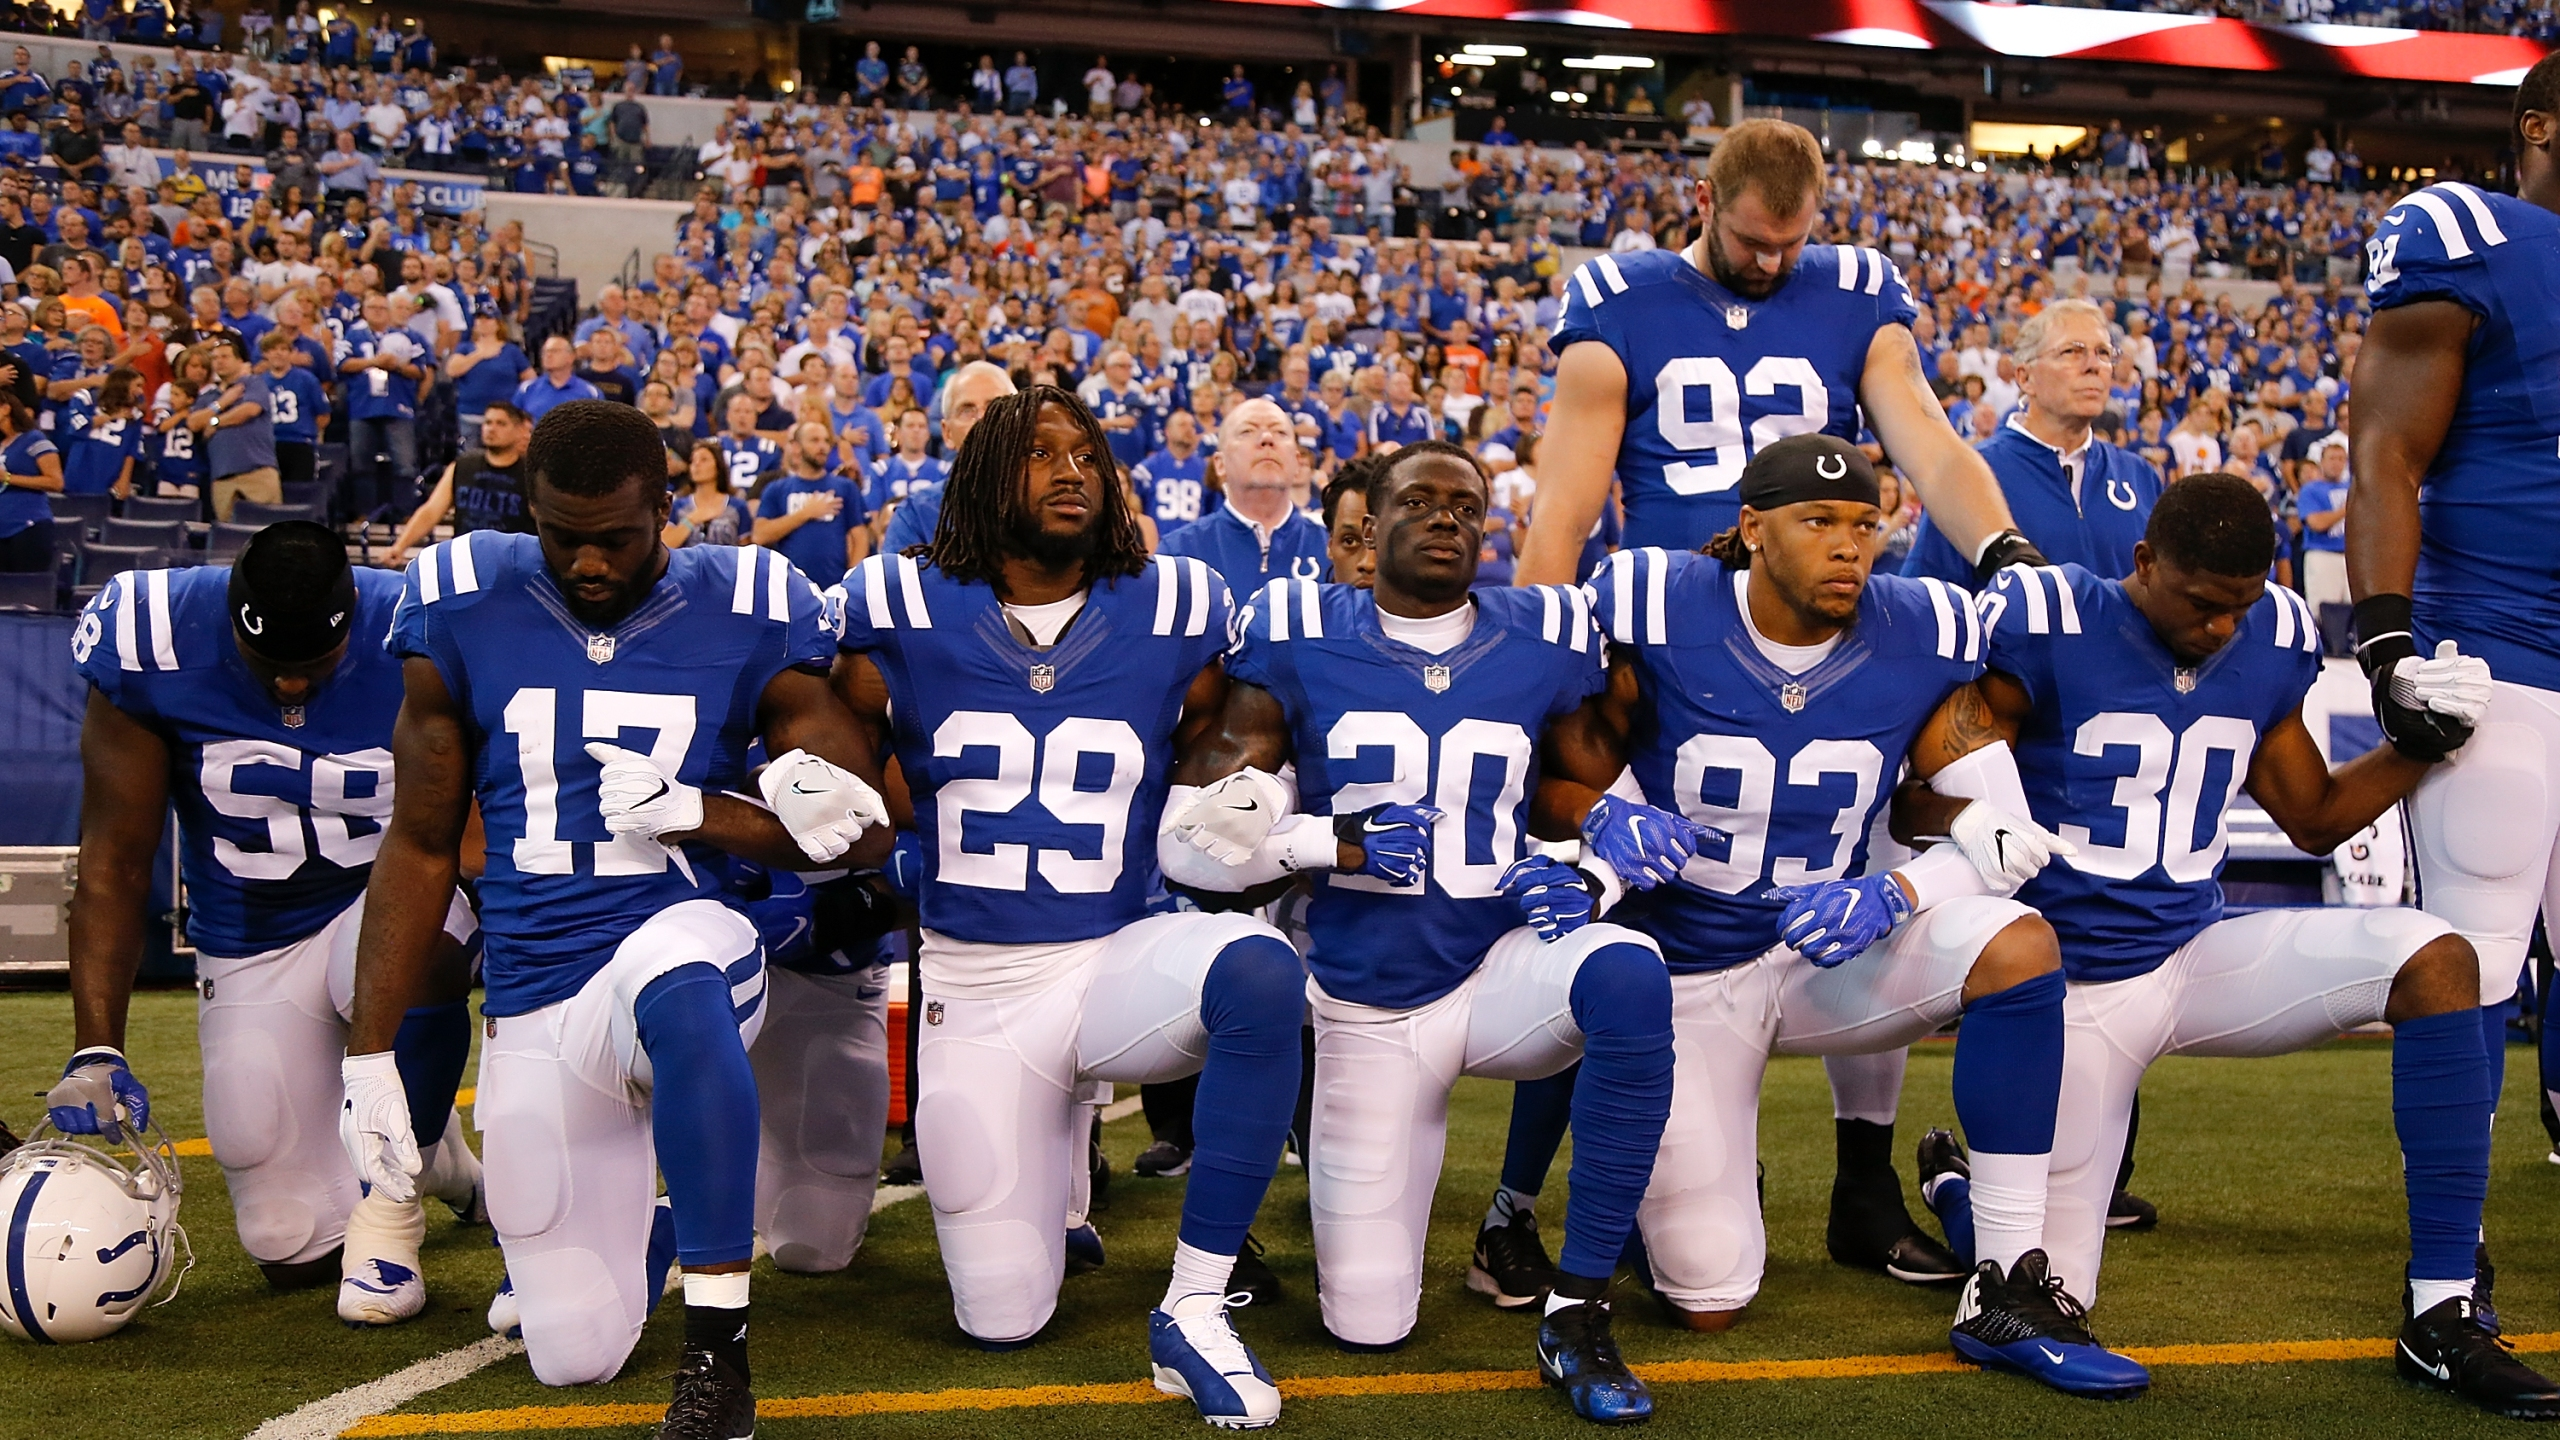 Members of the Indianapolis Colts stand and kneel for the national anthem prior to the start of the game between the Indianapolis Colts and the Cleveland Browns at Lucas Oil Stadium on Sept. 24, 2017. (Credit: Michael Reaves / Getty Images)